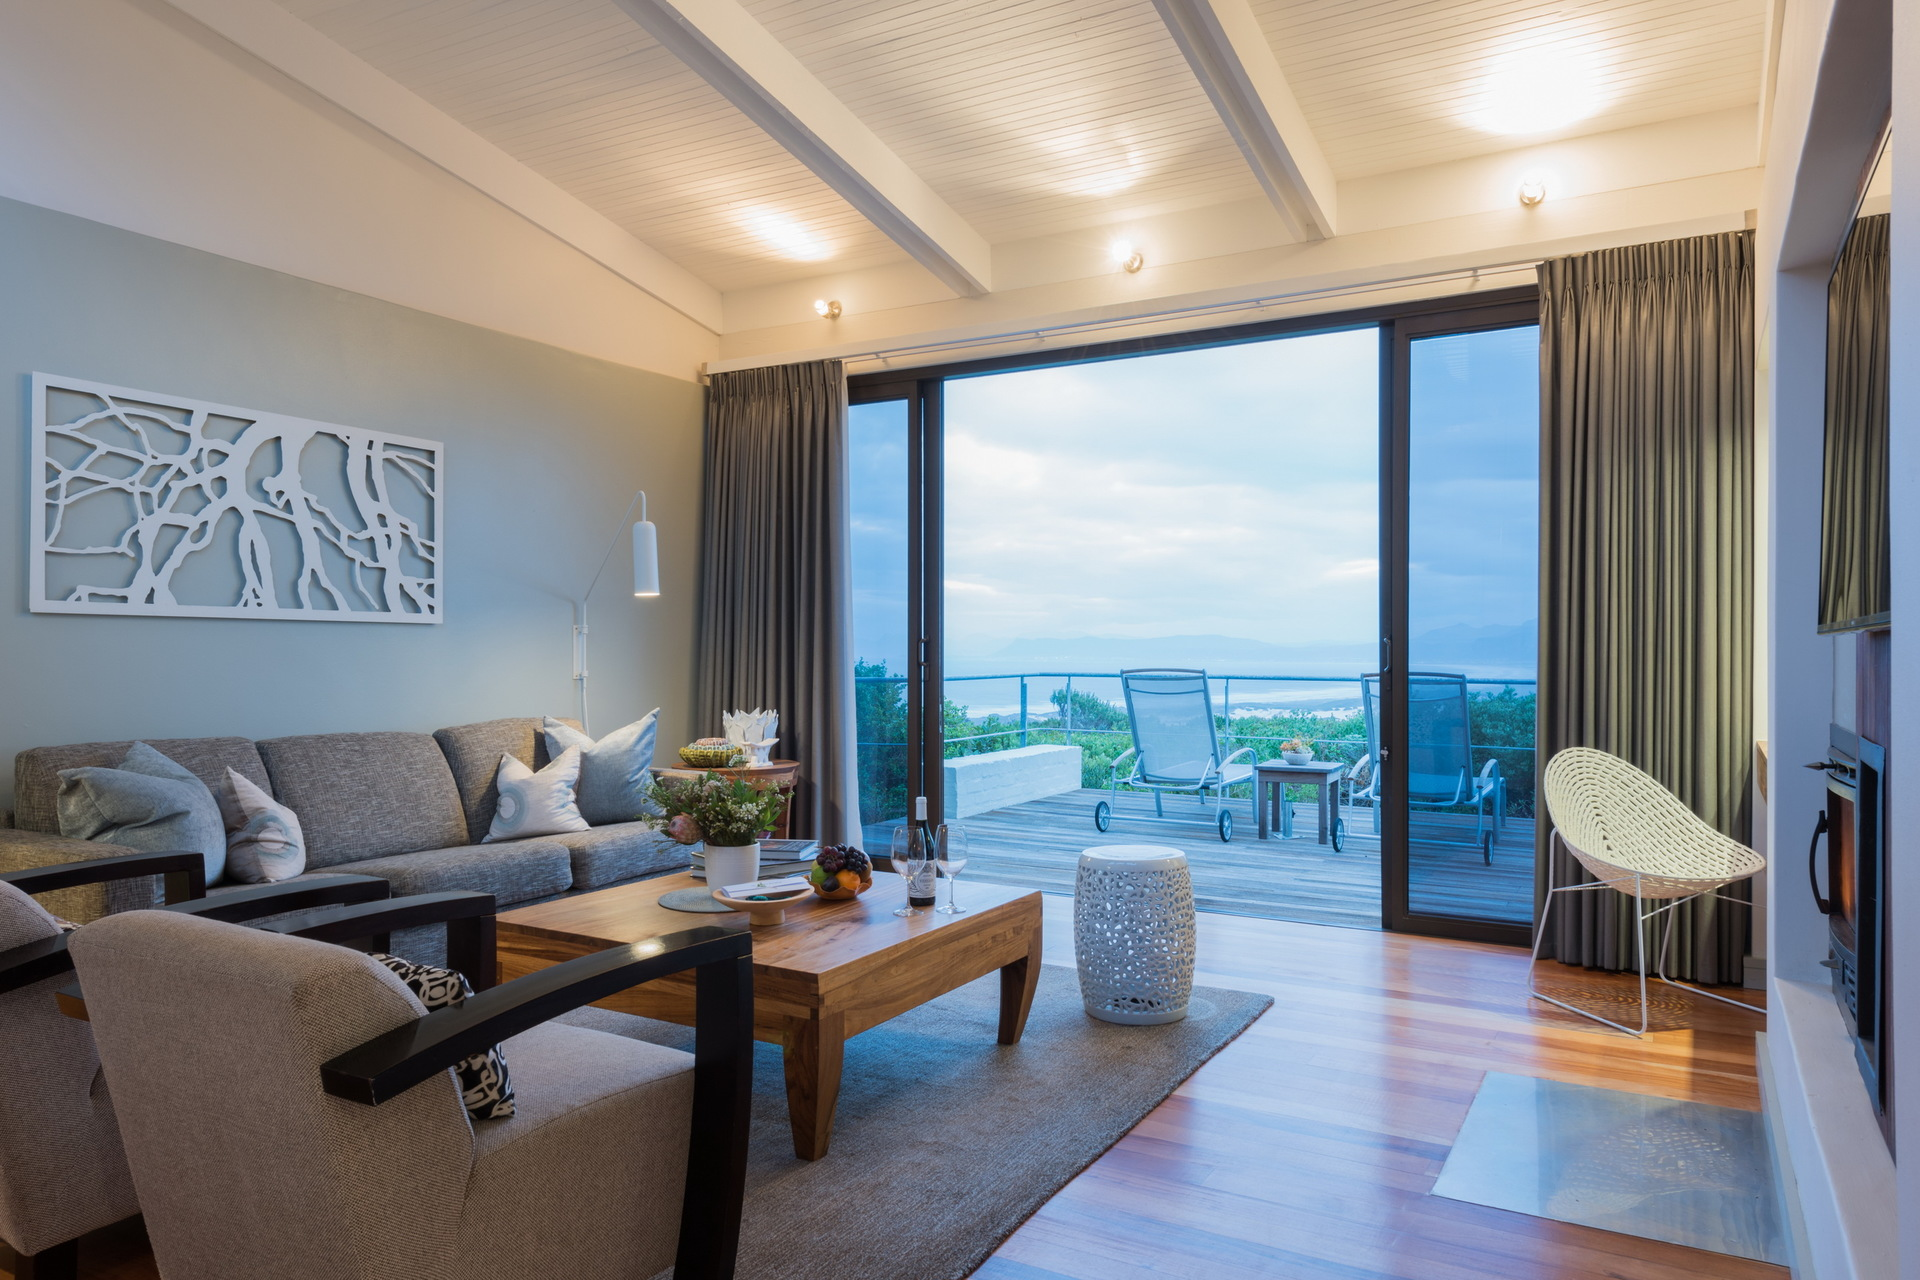 grootbos forest lodge - suite 23 living area #3.jpg